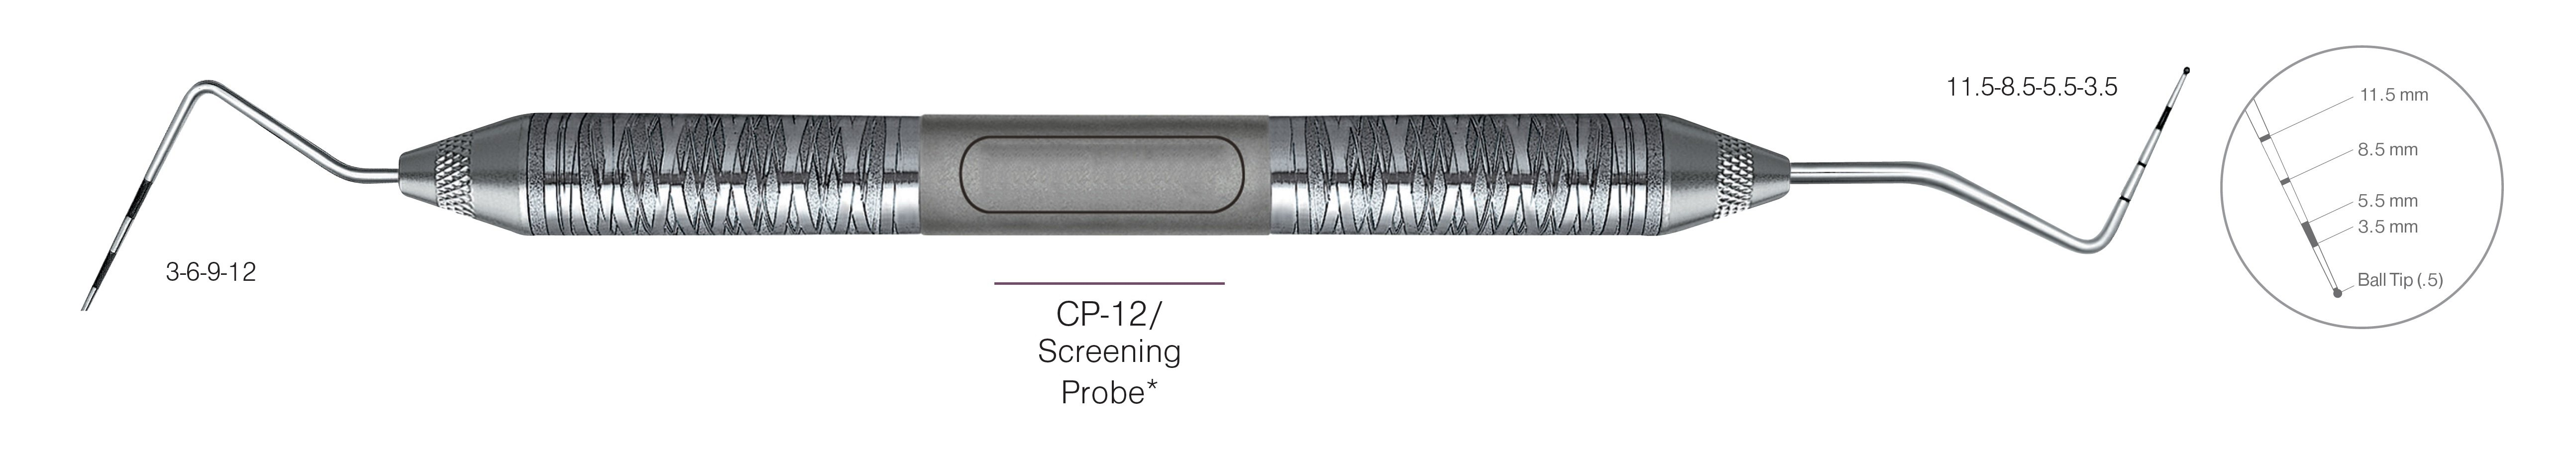 HF-P12-11.5B6-6, DOUBLE-ENDED SCREENING PROBES CP-12 Screening Probe*, Black markings, Tip 3-6-9-12 mm & 11.5-8.5-5.5-3.5 mm, With Ball tip (0.5), Handle Satin Steel, Aluminum Titanium Nitride (AlTiN) Coating, Double Ended